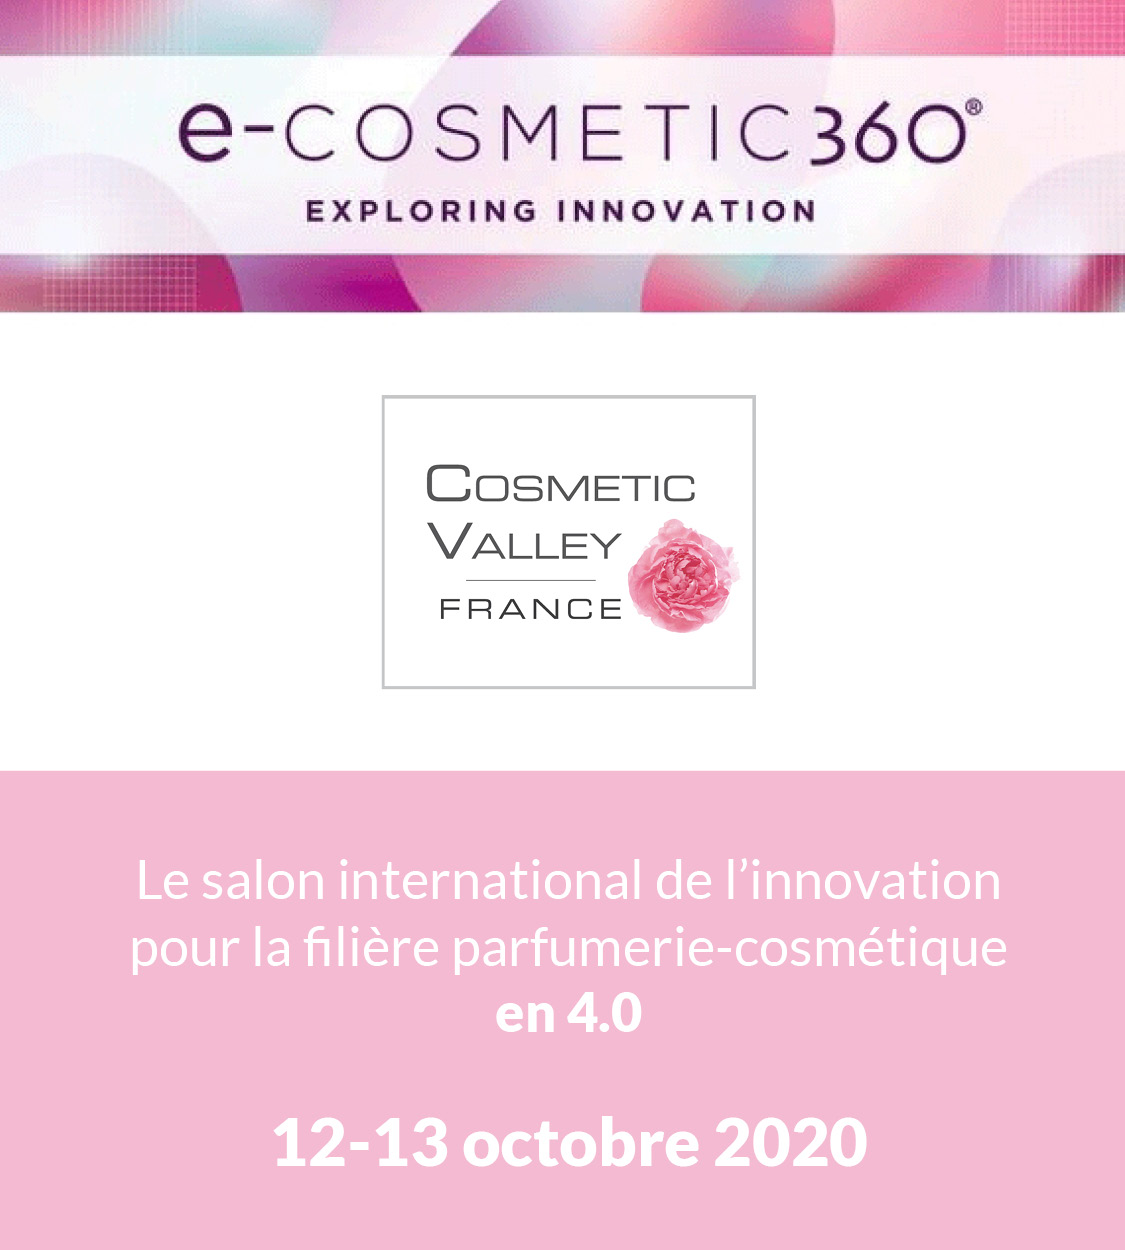 Advertising cosmetic 360